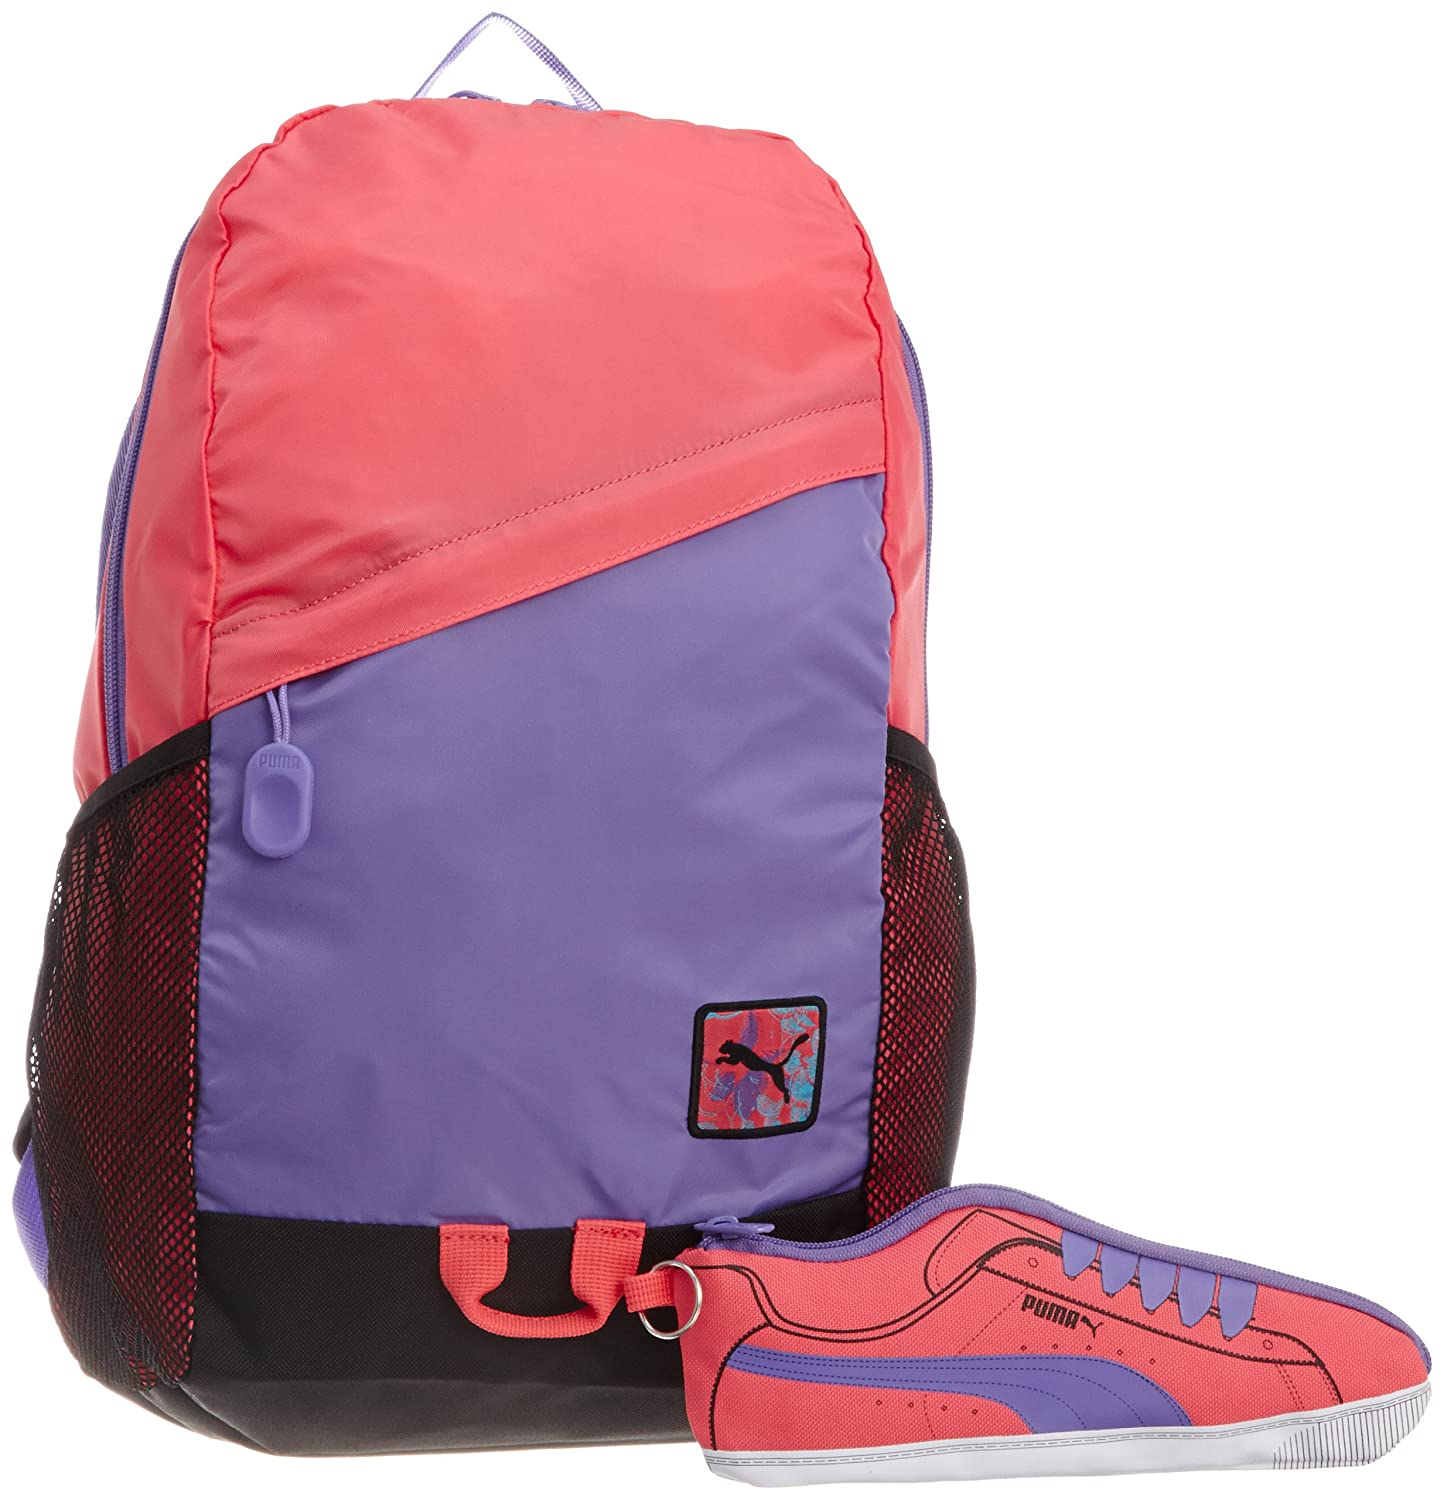 36c0787bb1 Puma Purple   Pink Special Backpack for Girls - 7227101-X  Amazon.in  Bags